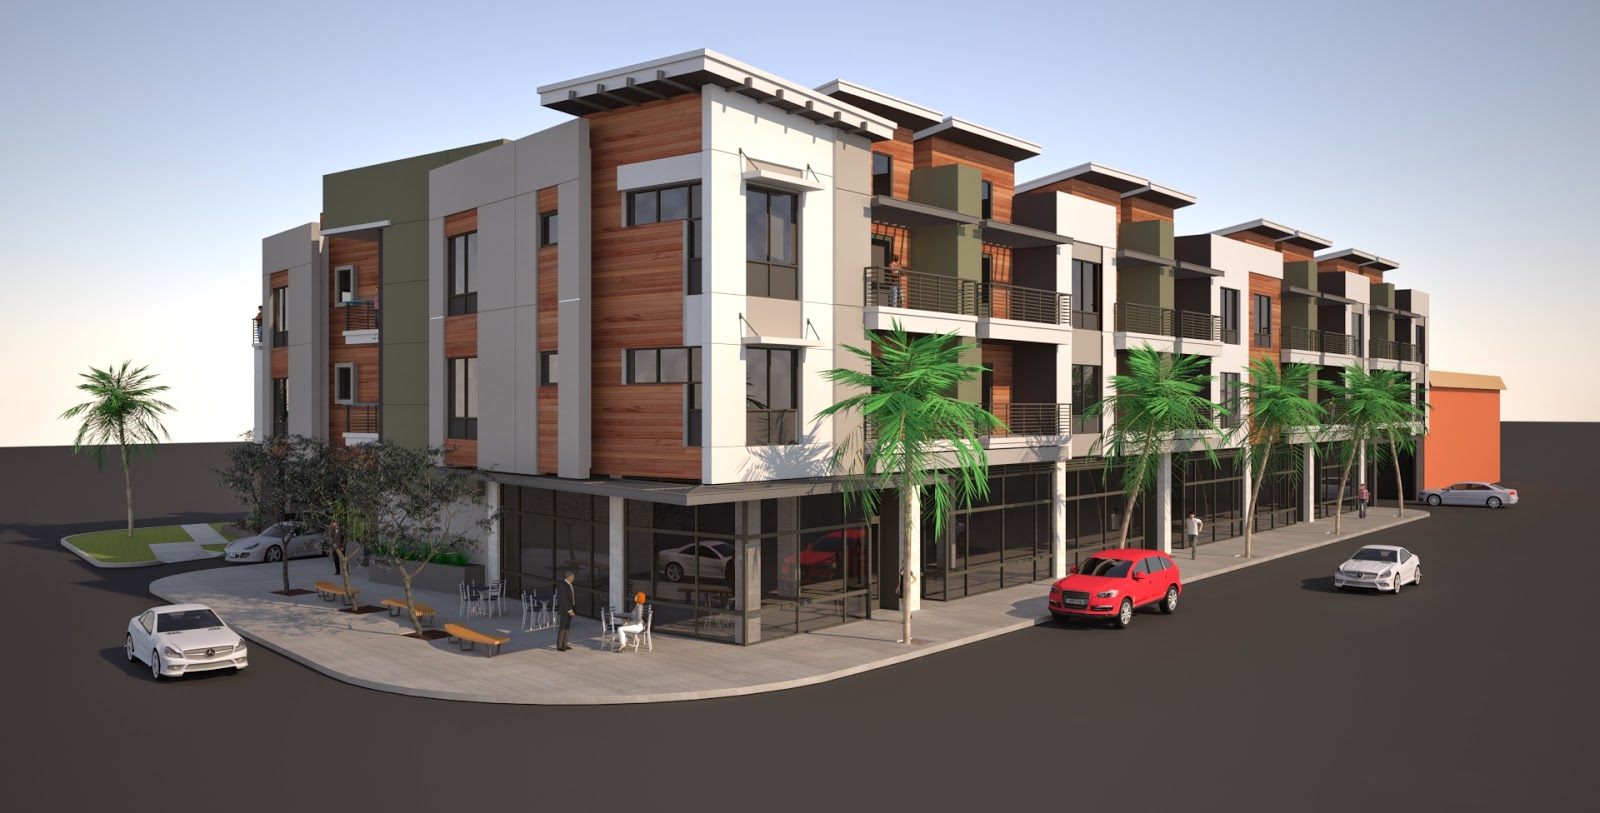 Building los angeles for Apartment building plans 2 units